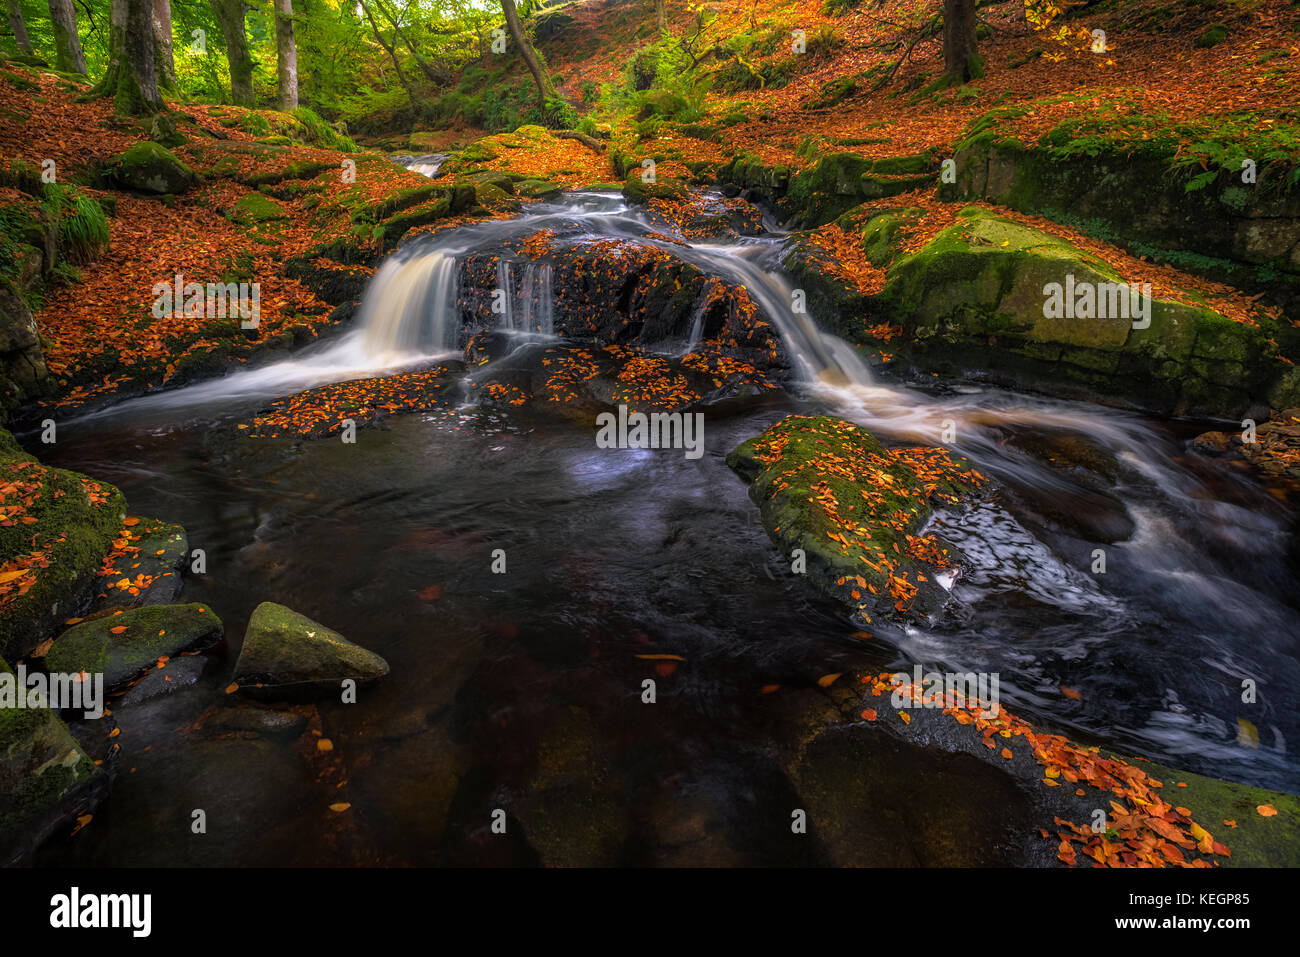 Autunm river in the forest - Ireland - Stock Image